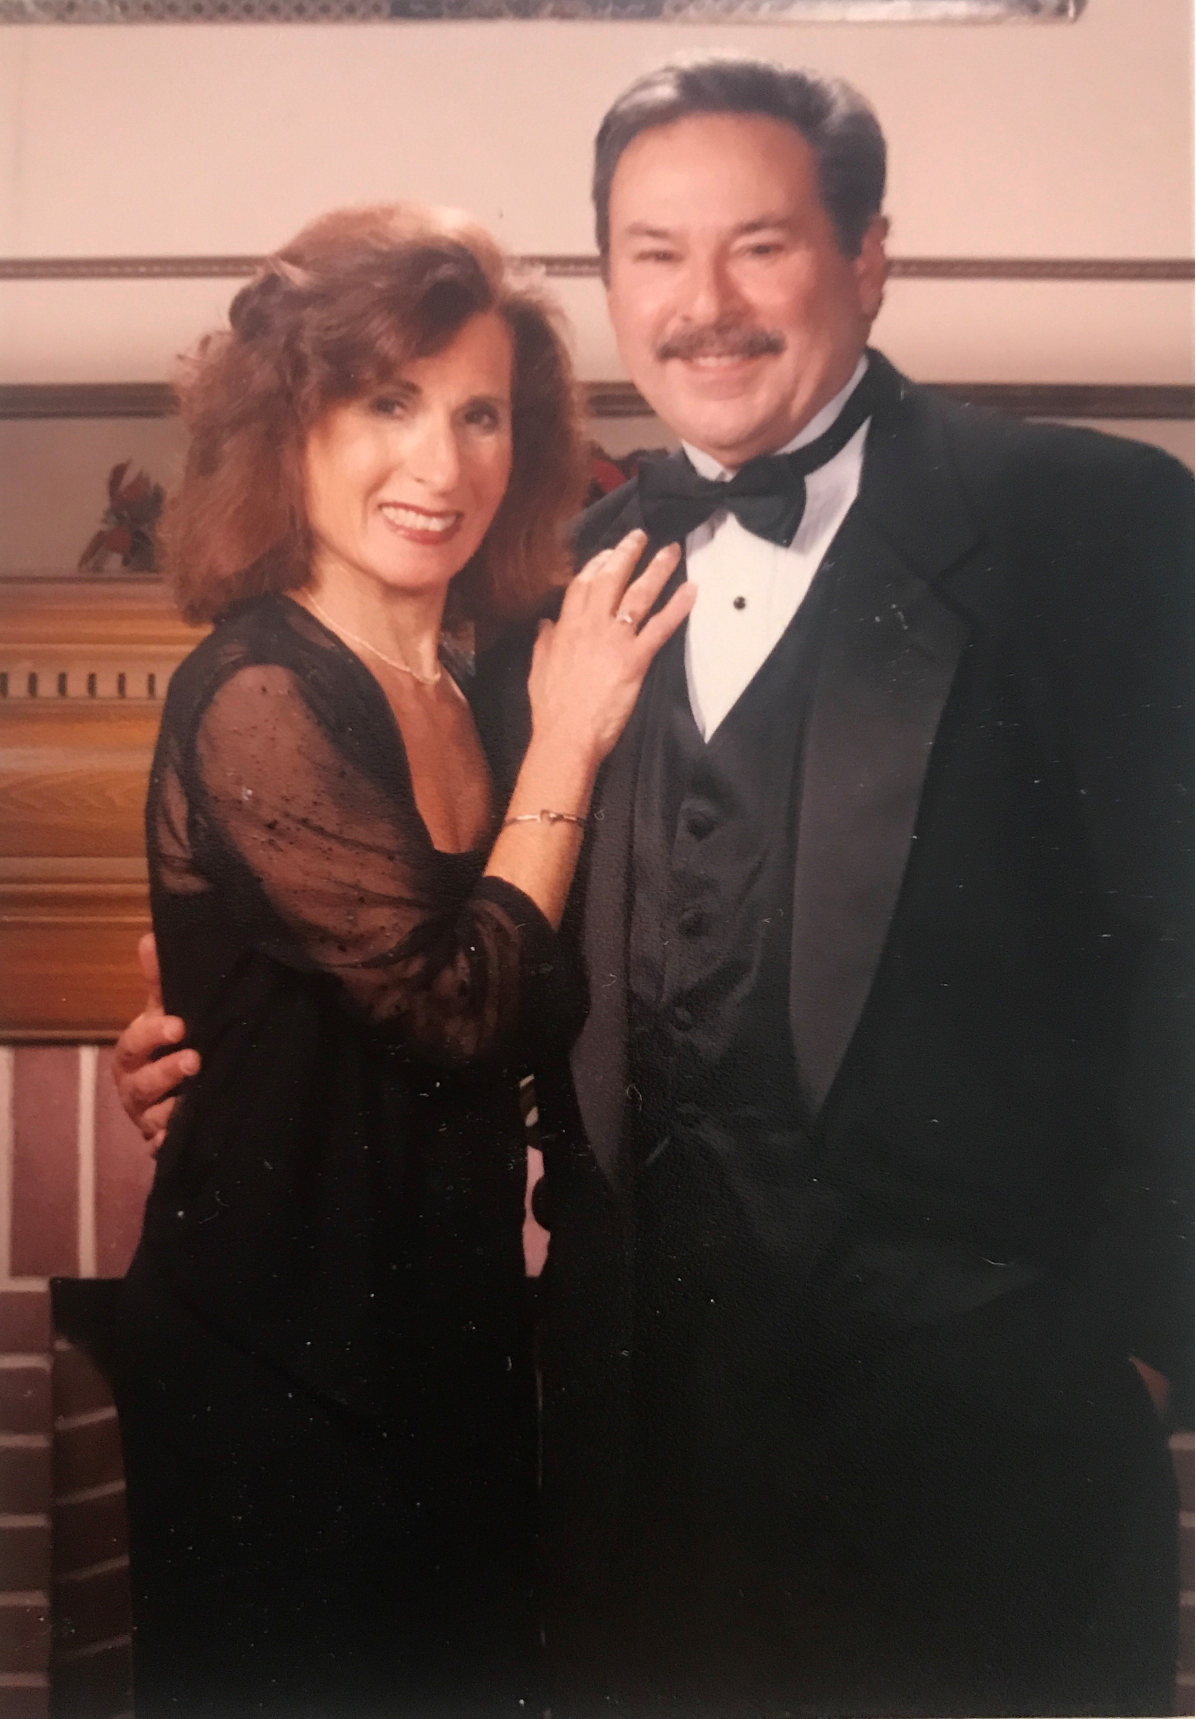 Danna and Roger Levy